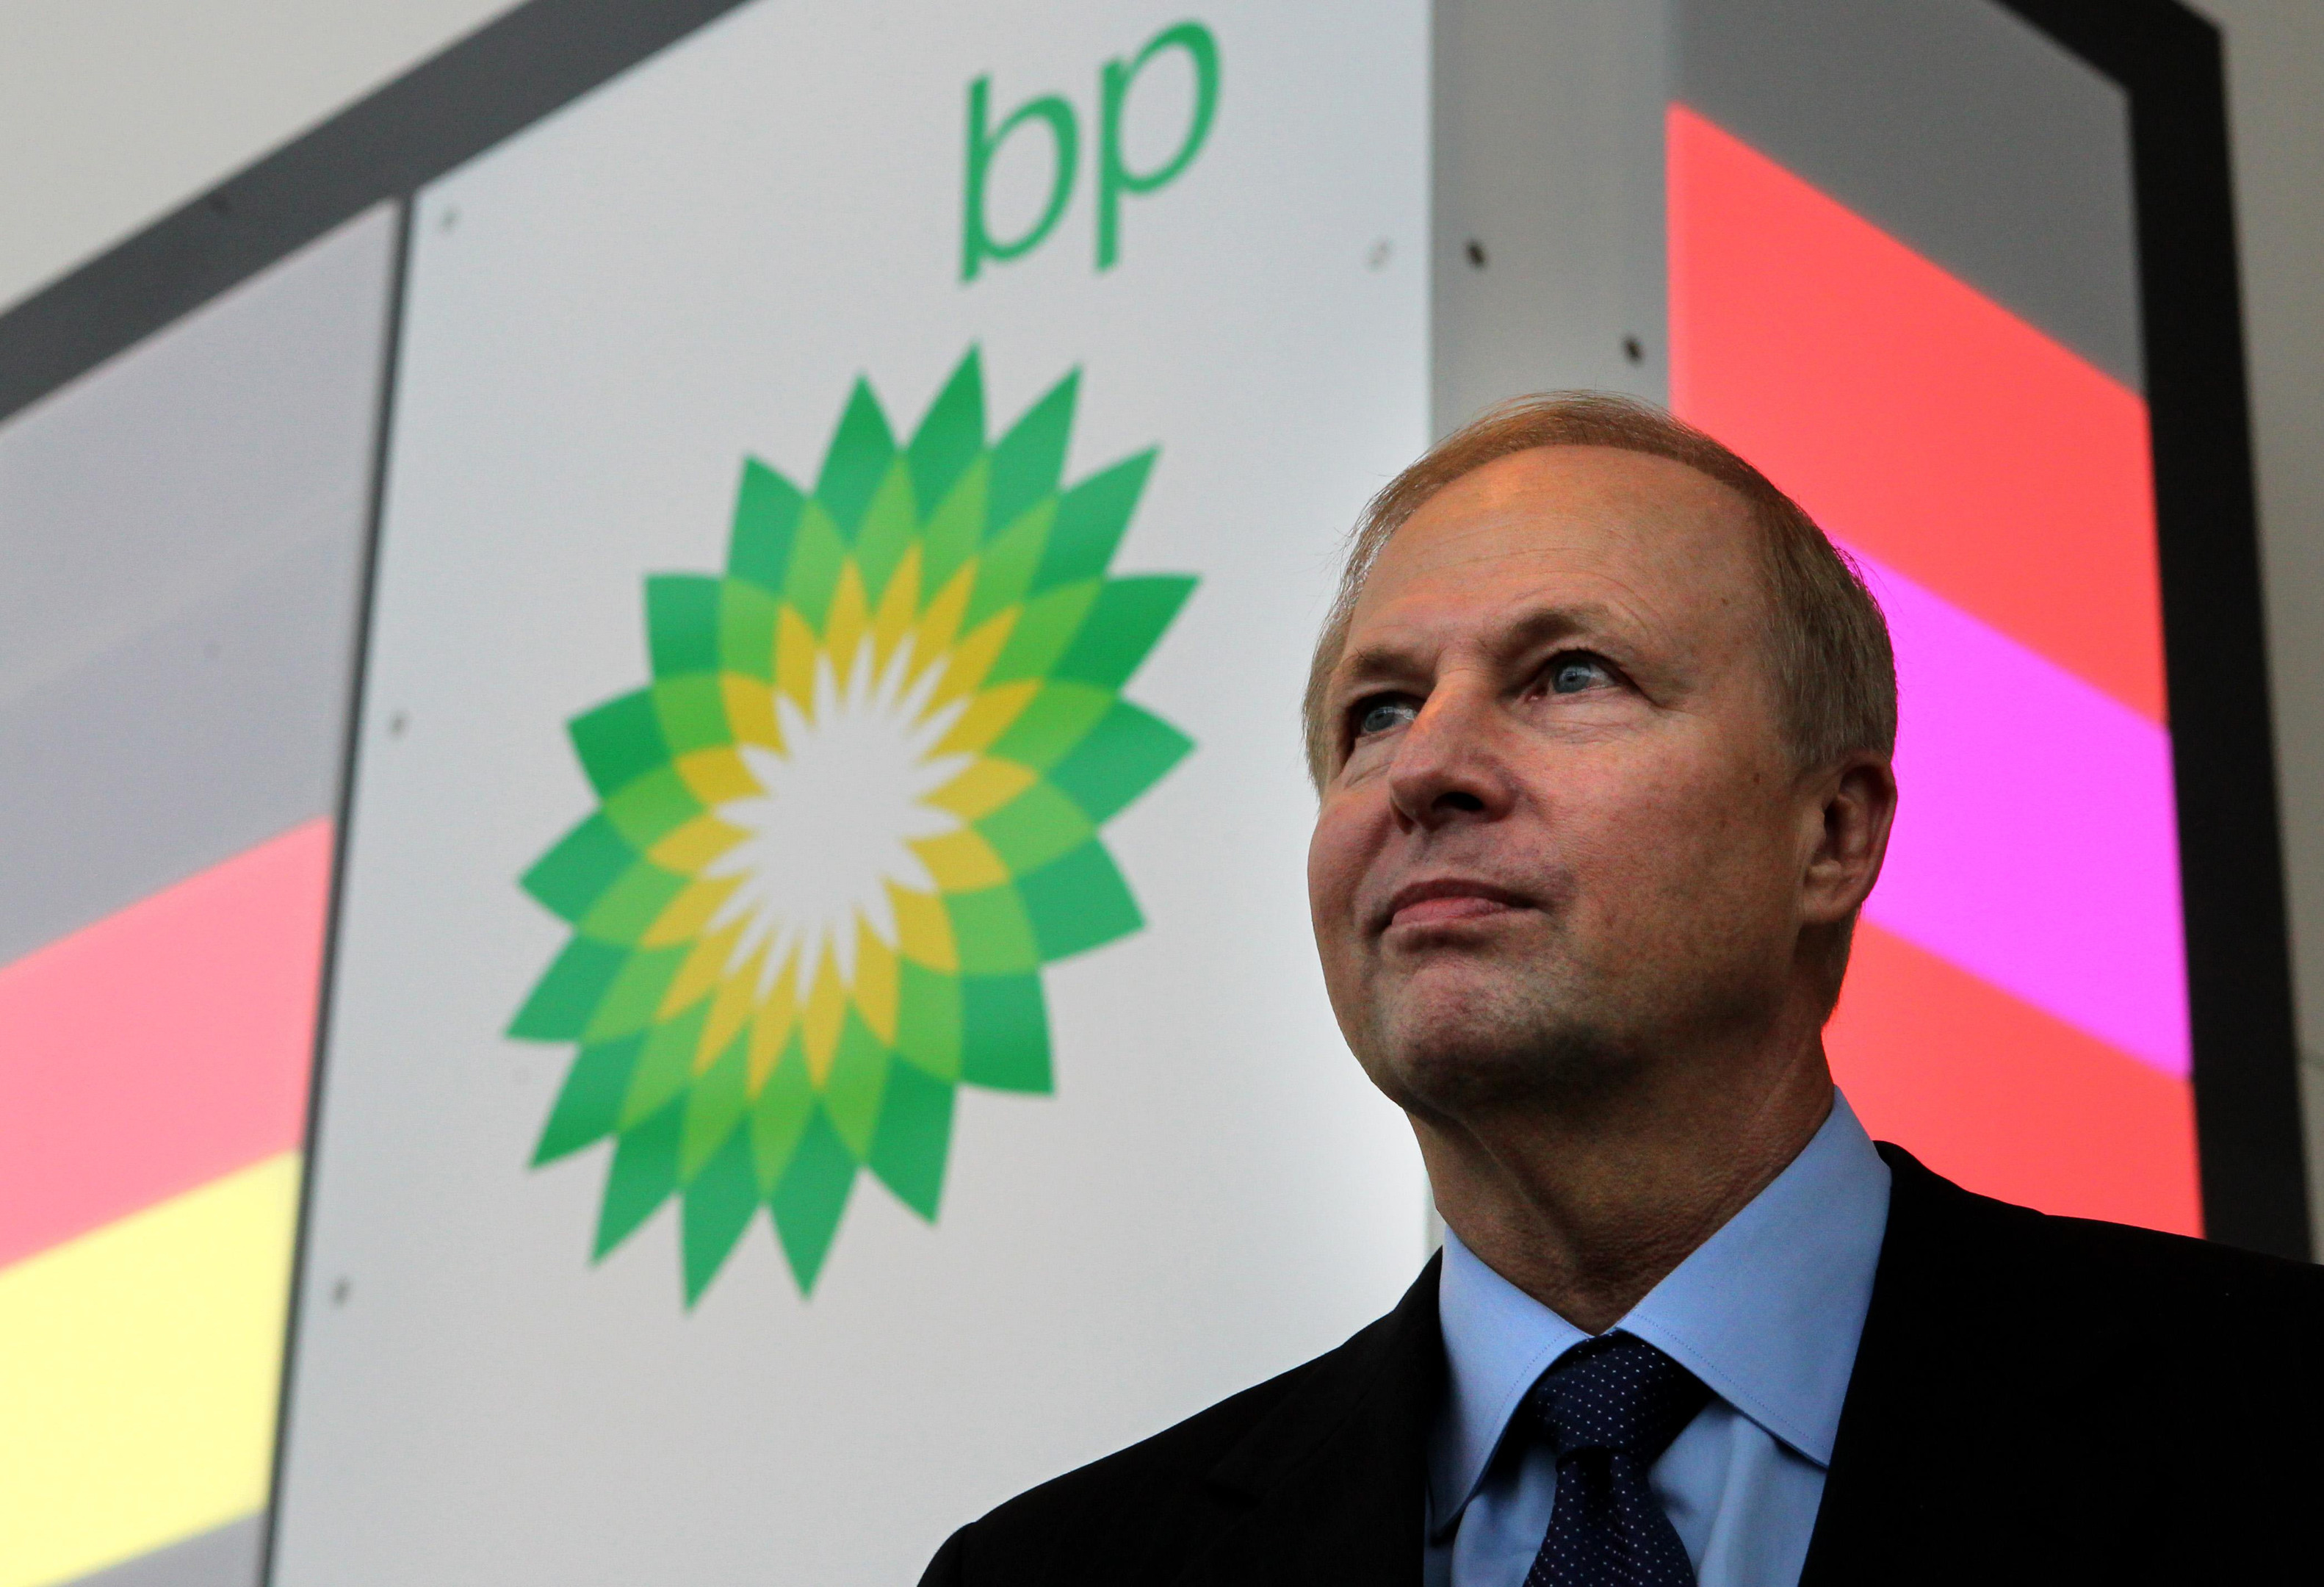 BP Chief Executive Bob Dudley (Andrew Milligan / PA Archive)